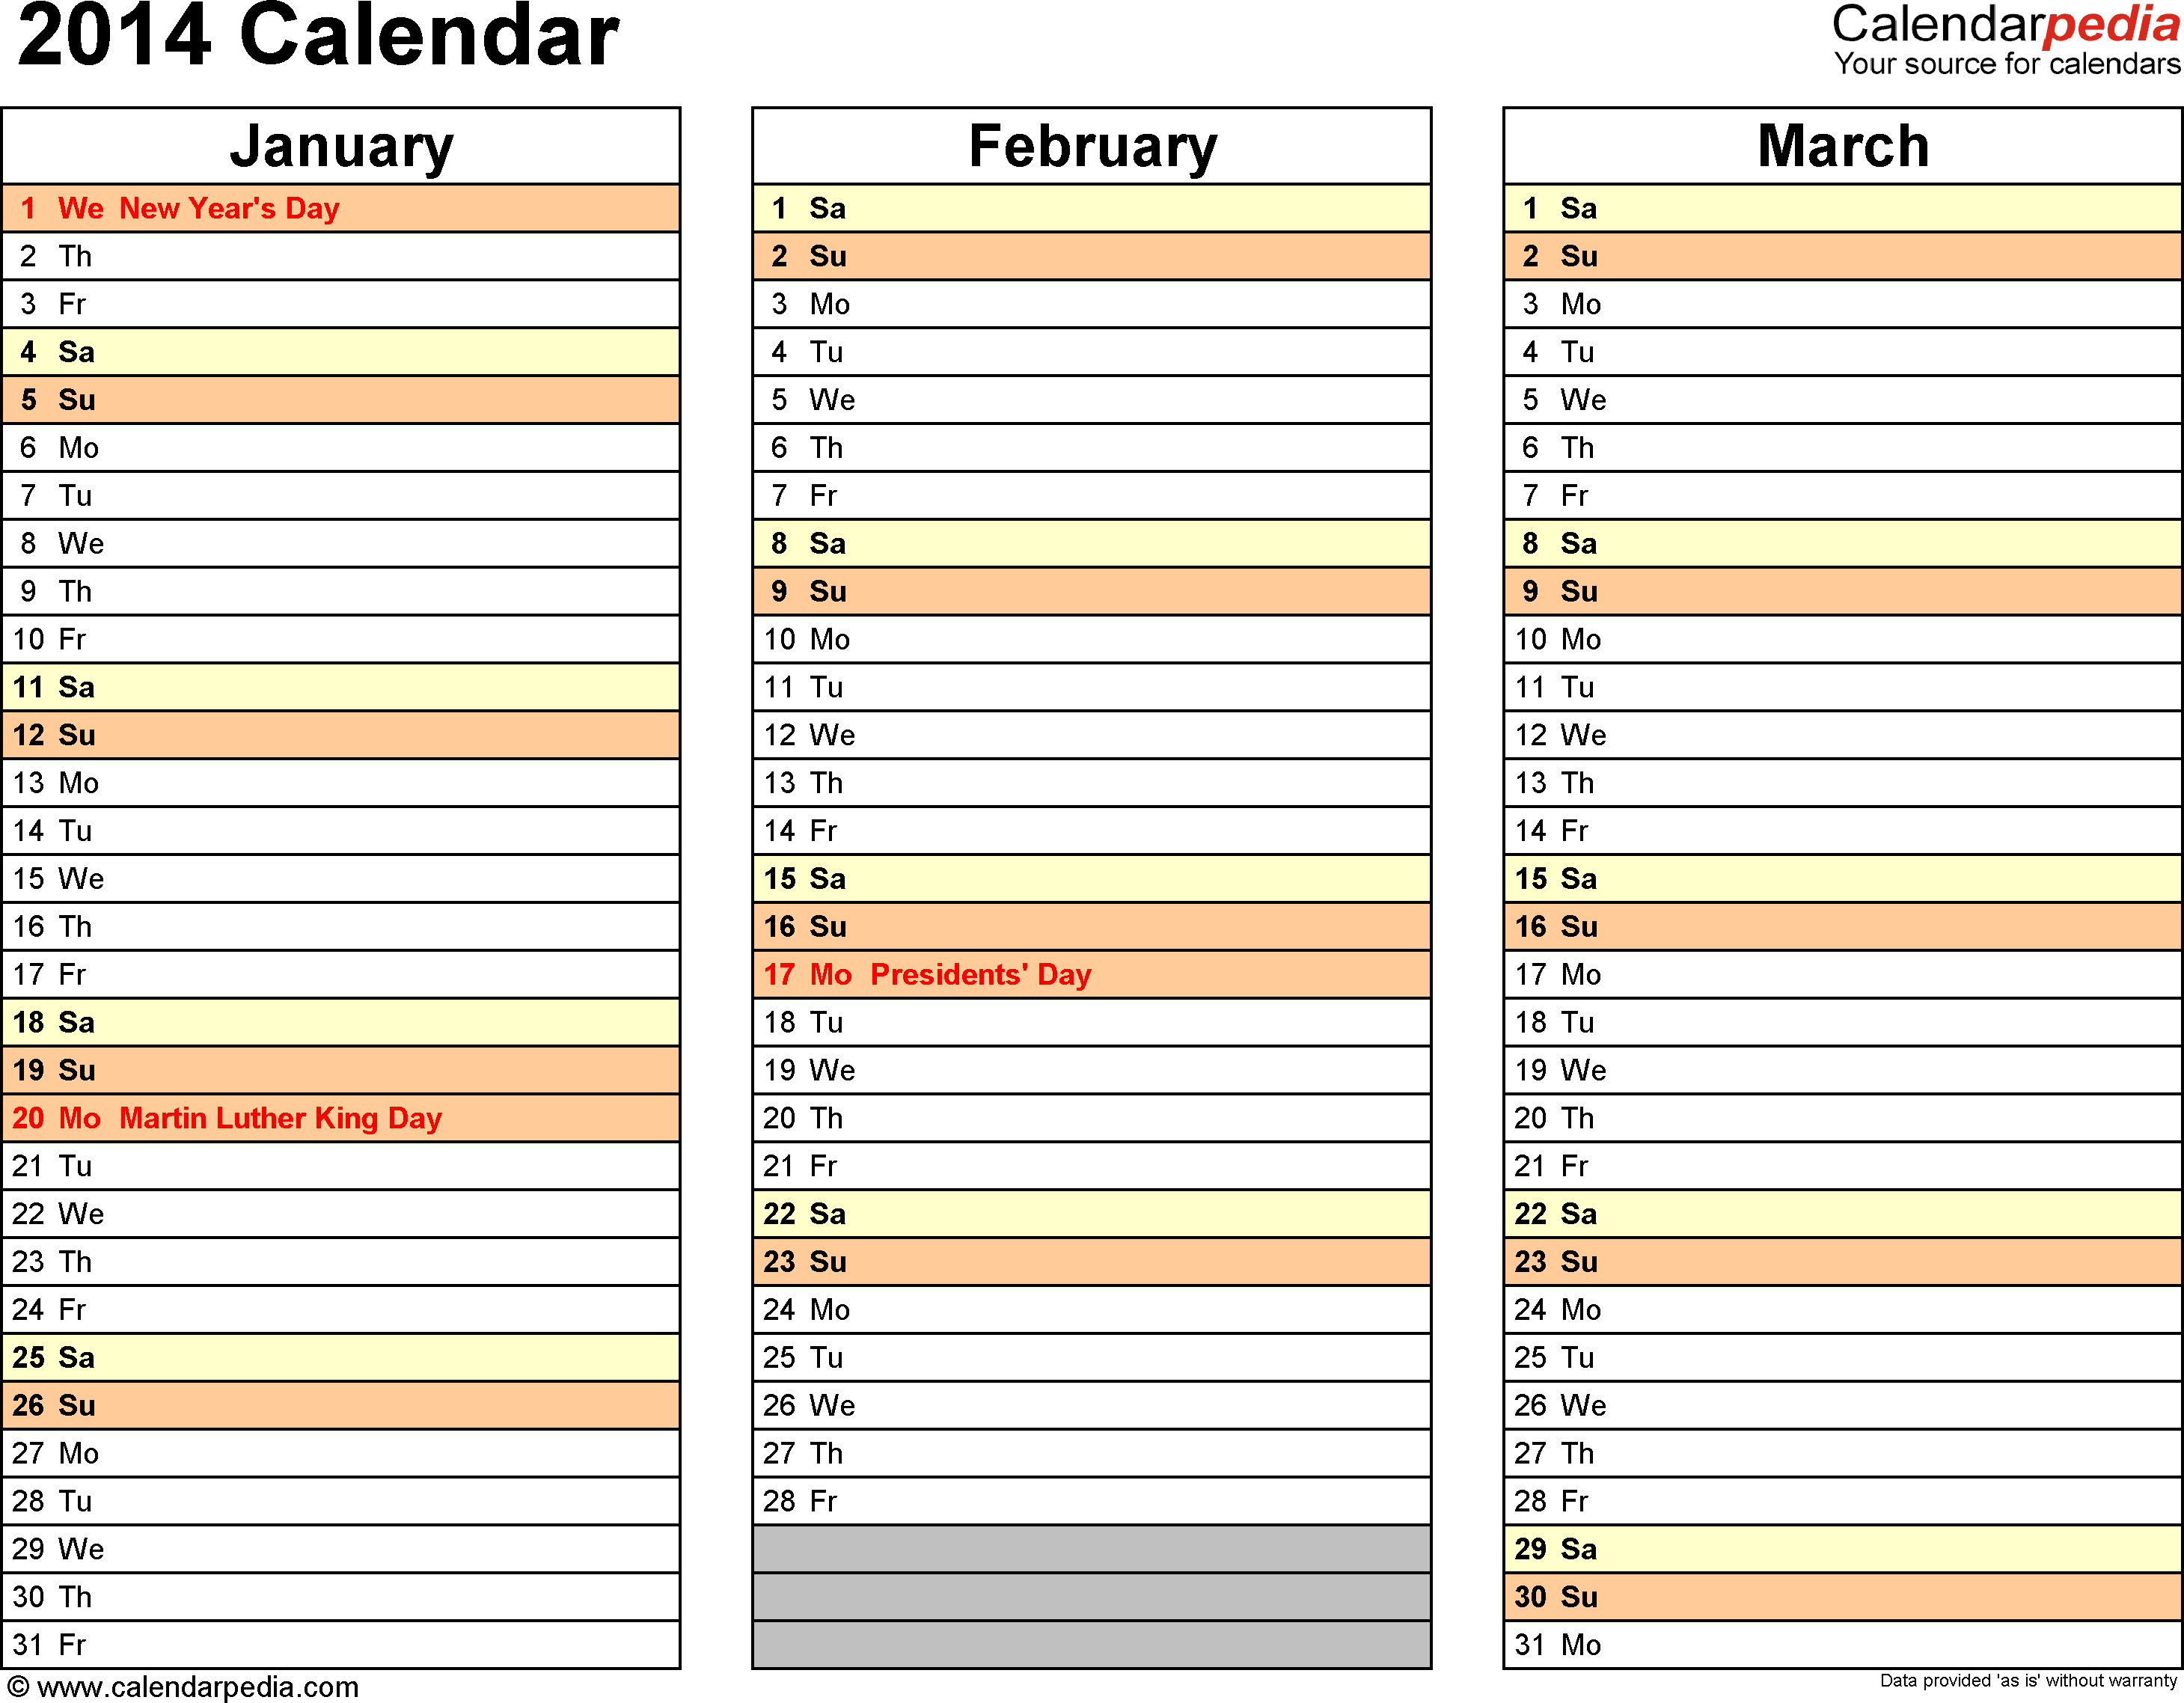 Download Word template for 2014 calendar template 6: landscape orientation, 4 pages, months horizontally, days vertically, with US federal holidays 2014, paper format: US letter